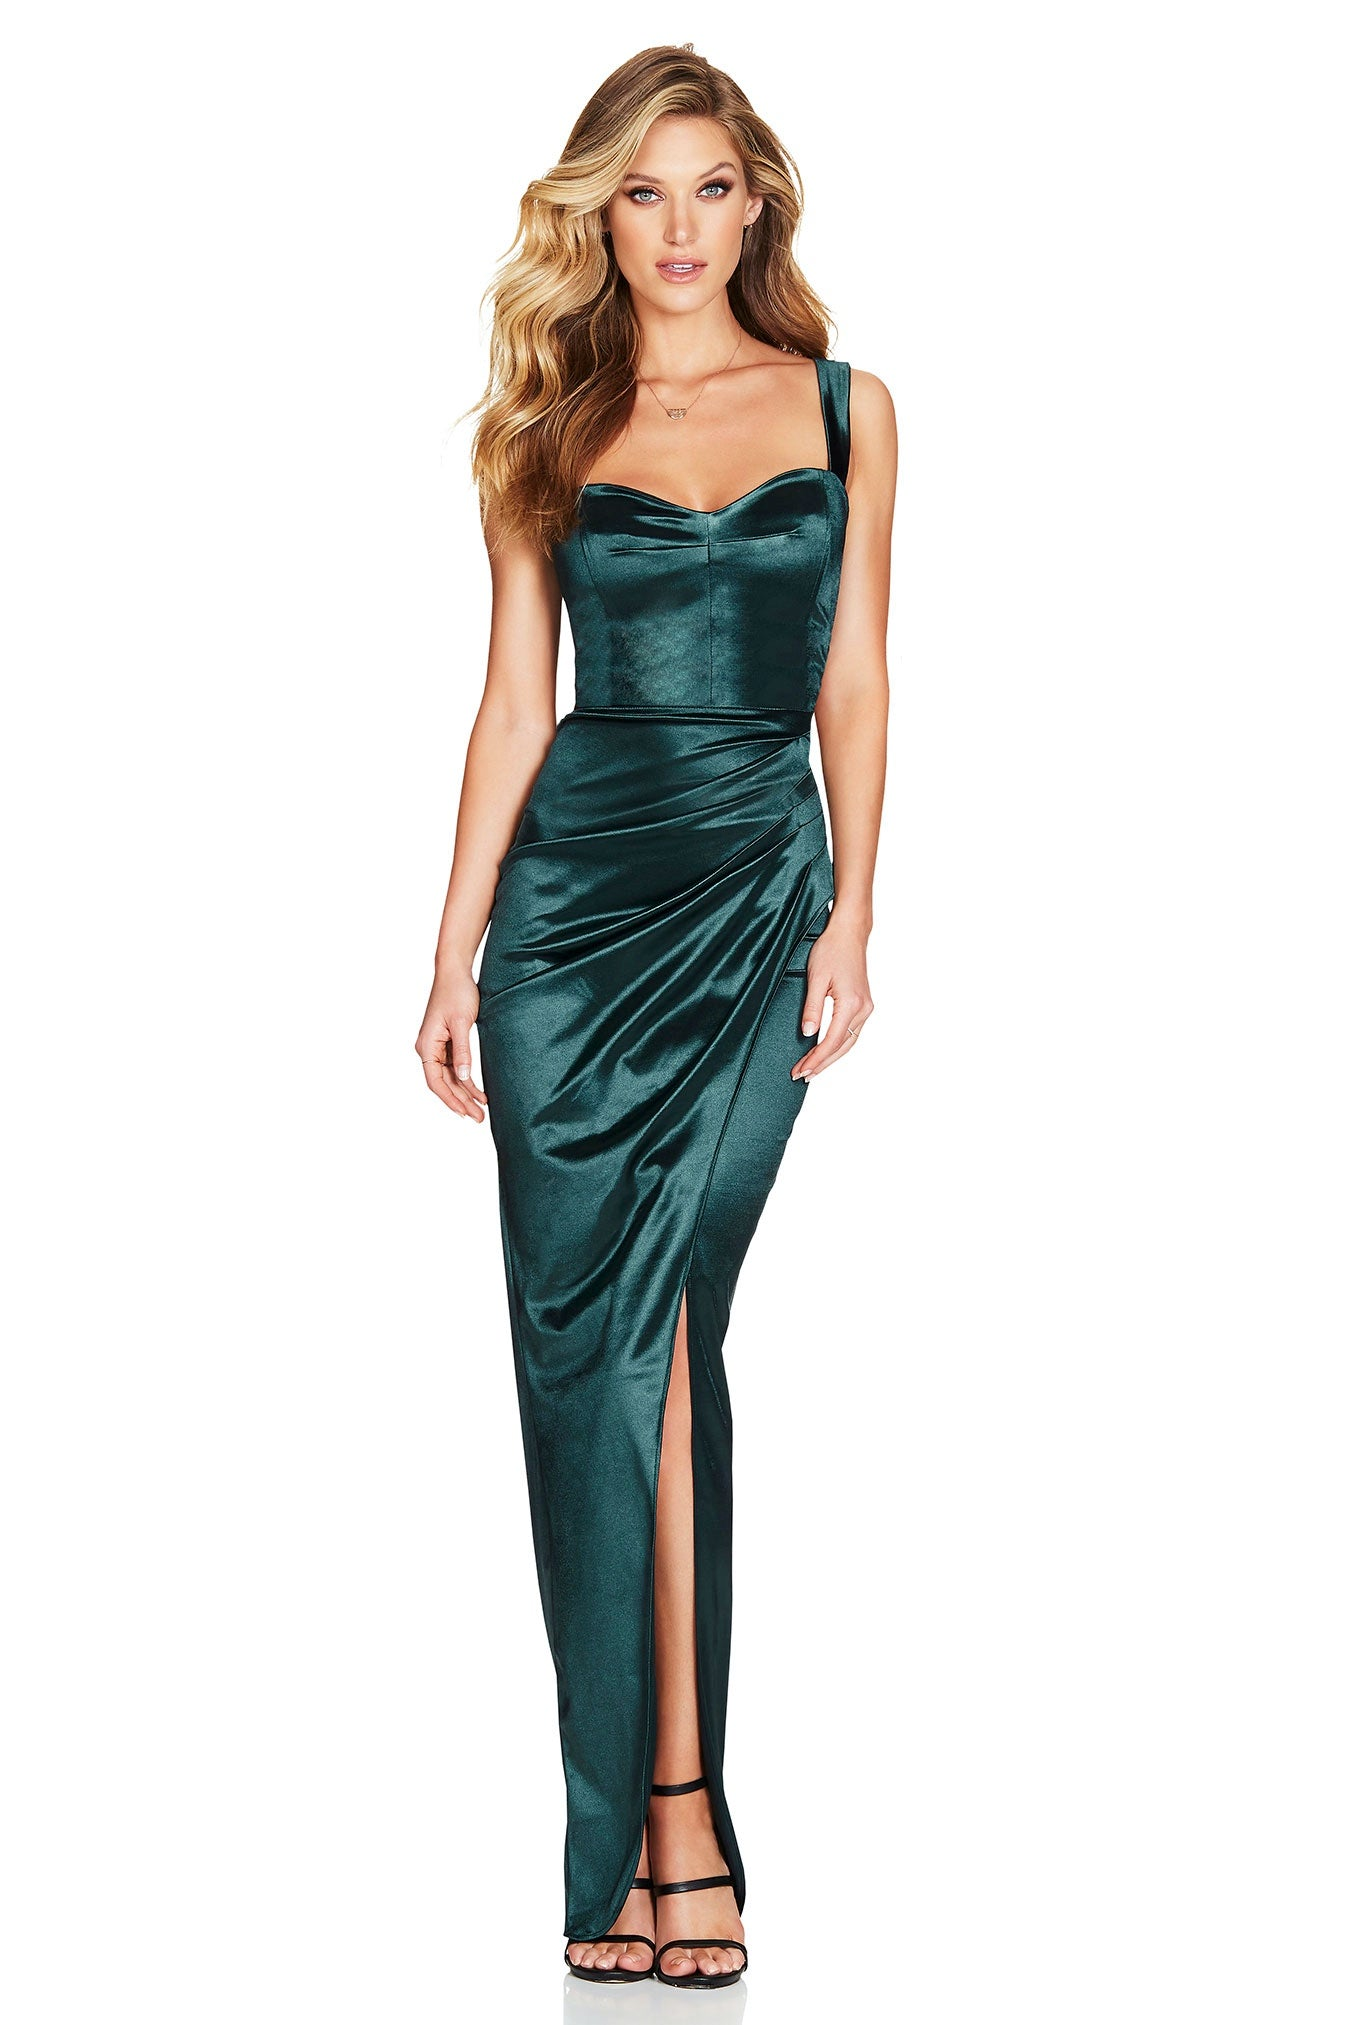 NOOKIE SLAY GOWN